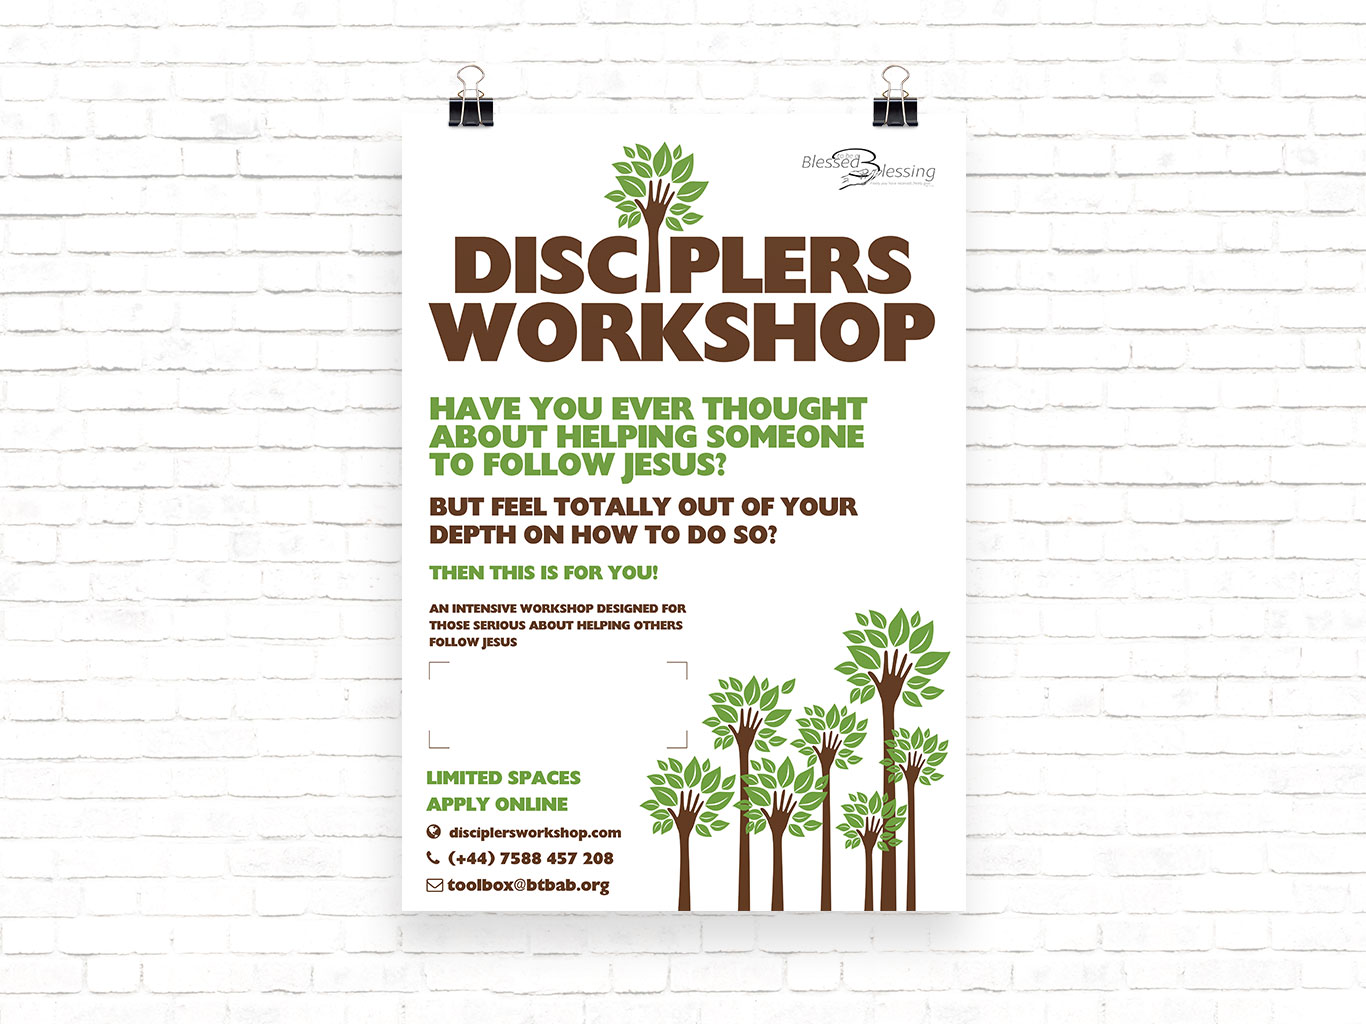 disciplers-workshop-poster-mockup